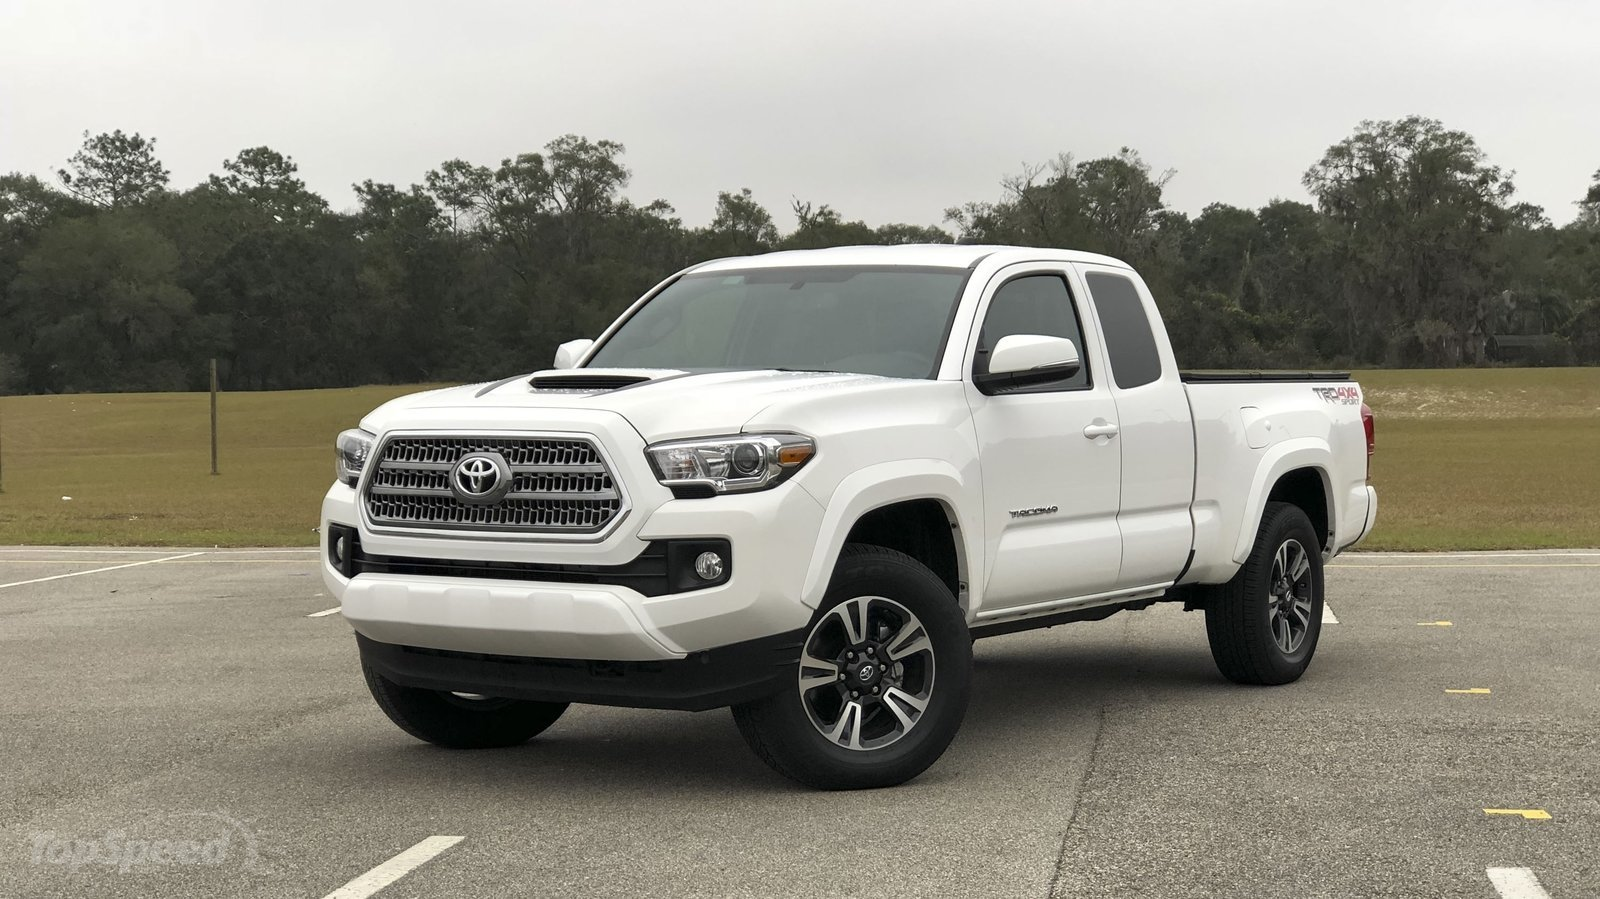 Toyota Tacoma Extended Cab Bed Size